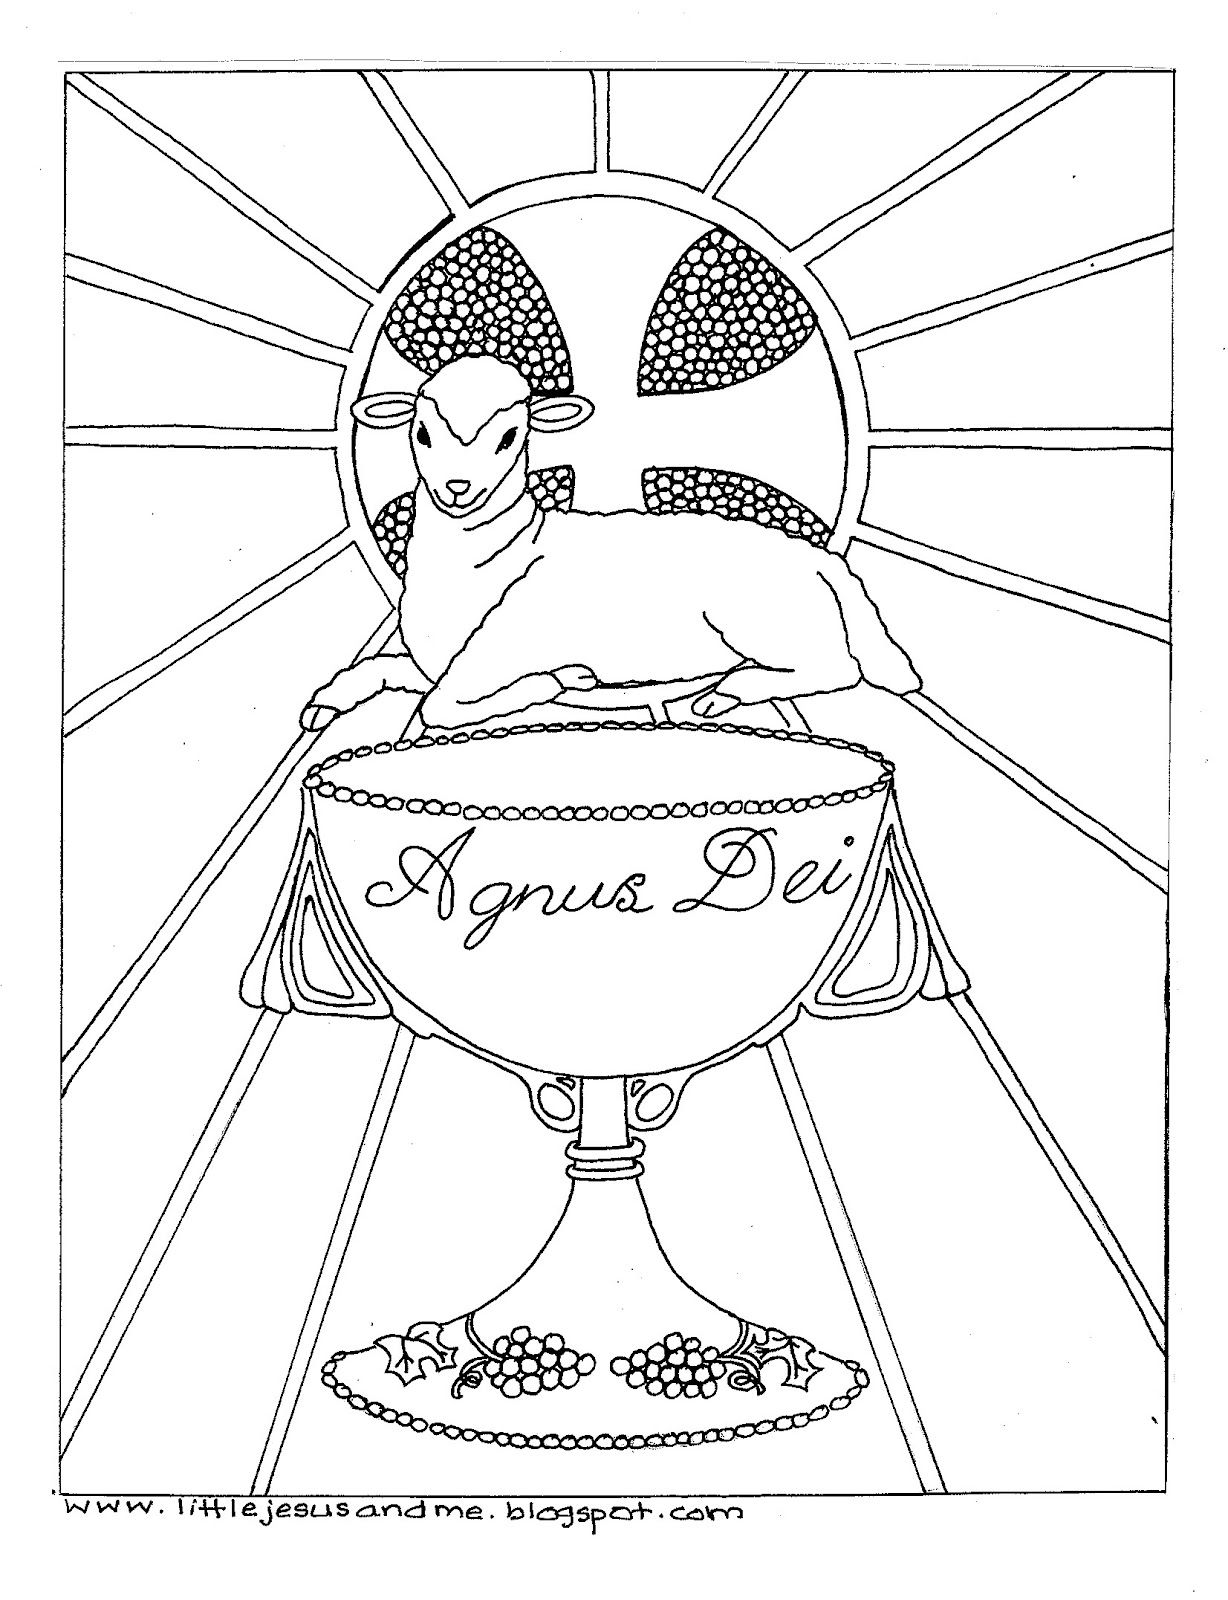 Lamb+of+God+Color+Page04072012_0001.jpg (1228×1600